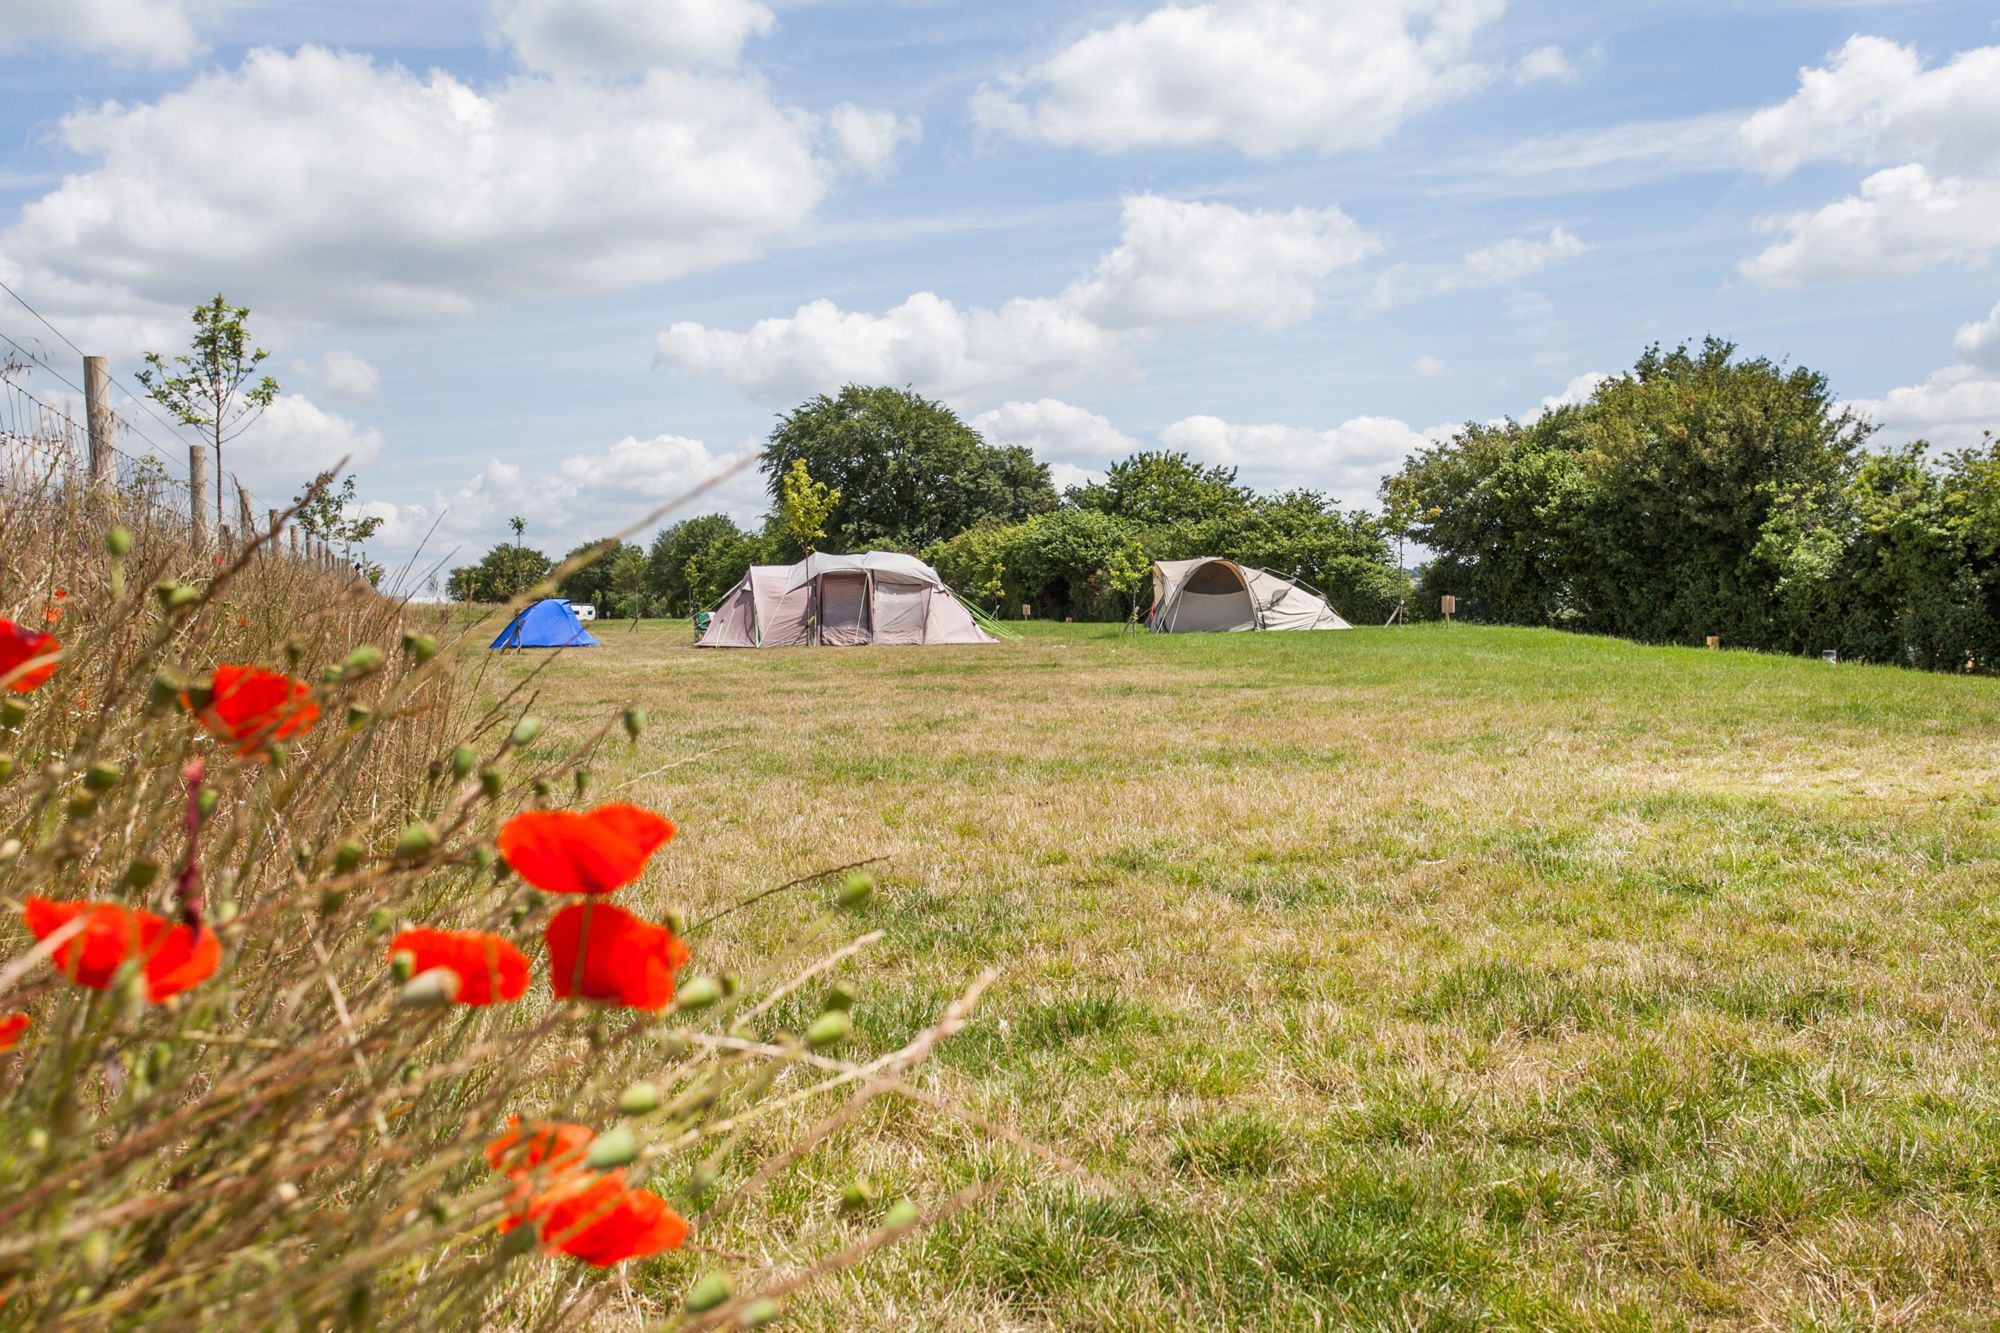 Campsites in the South Downs – Top campsites in the South Downs National Park